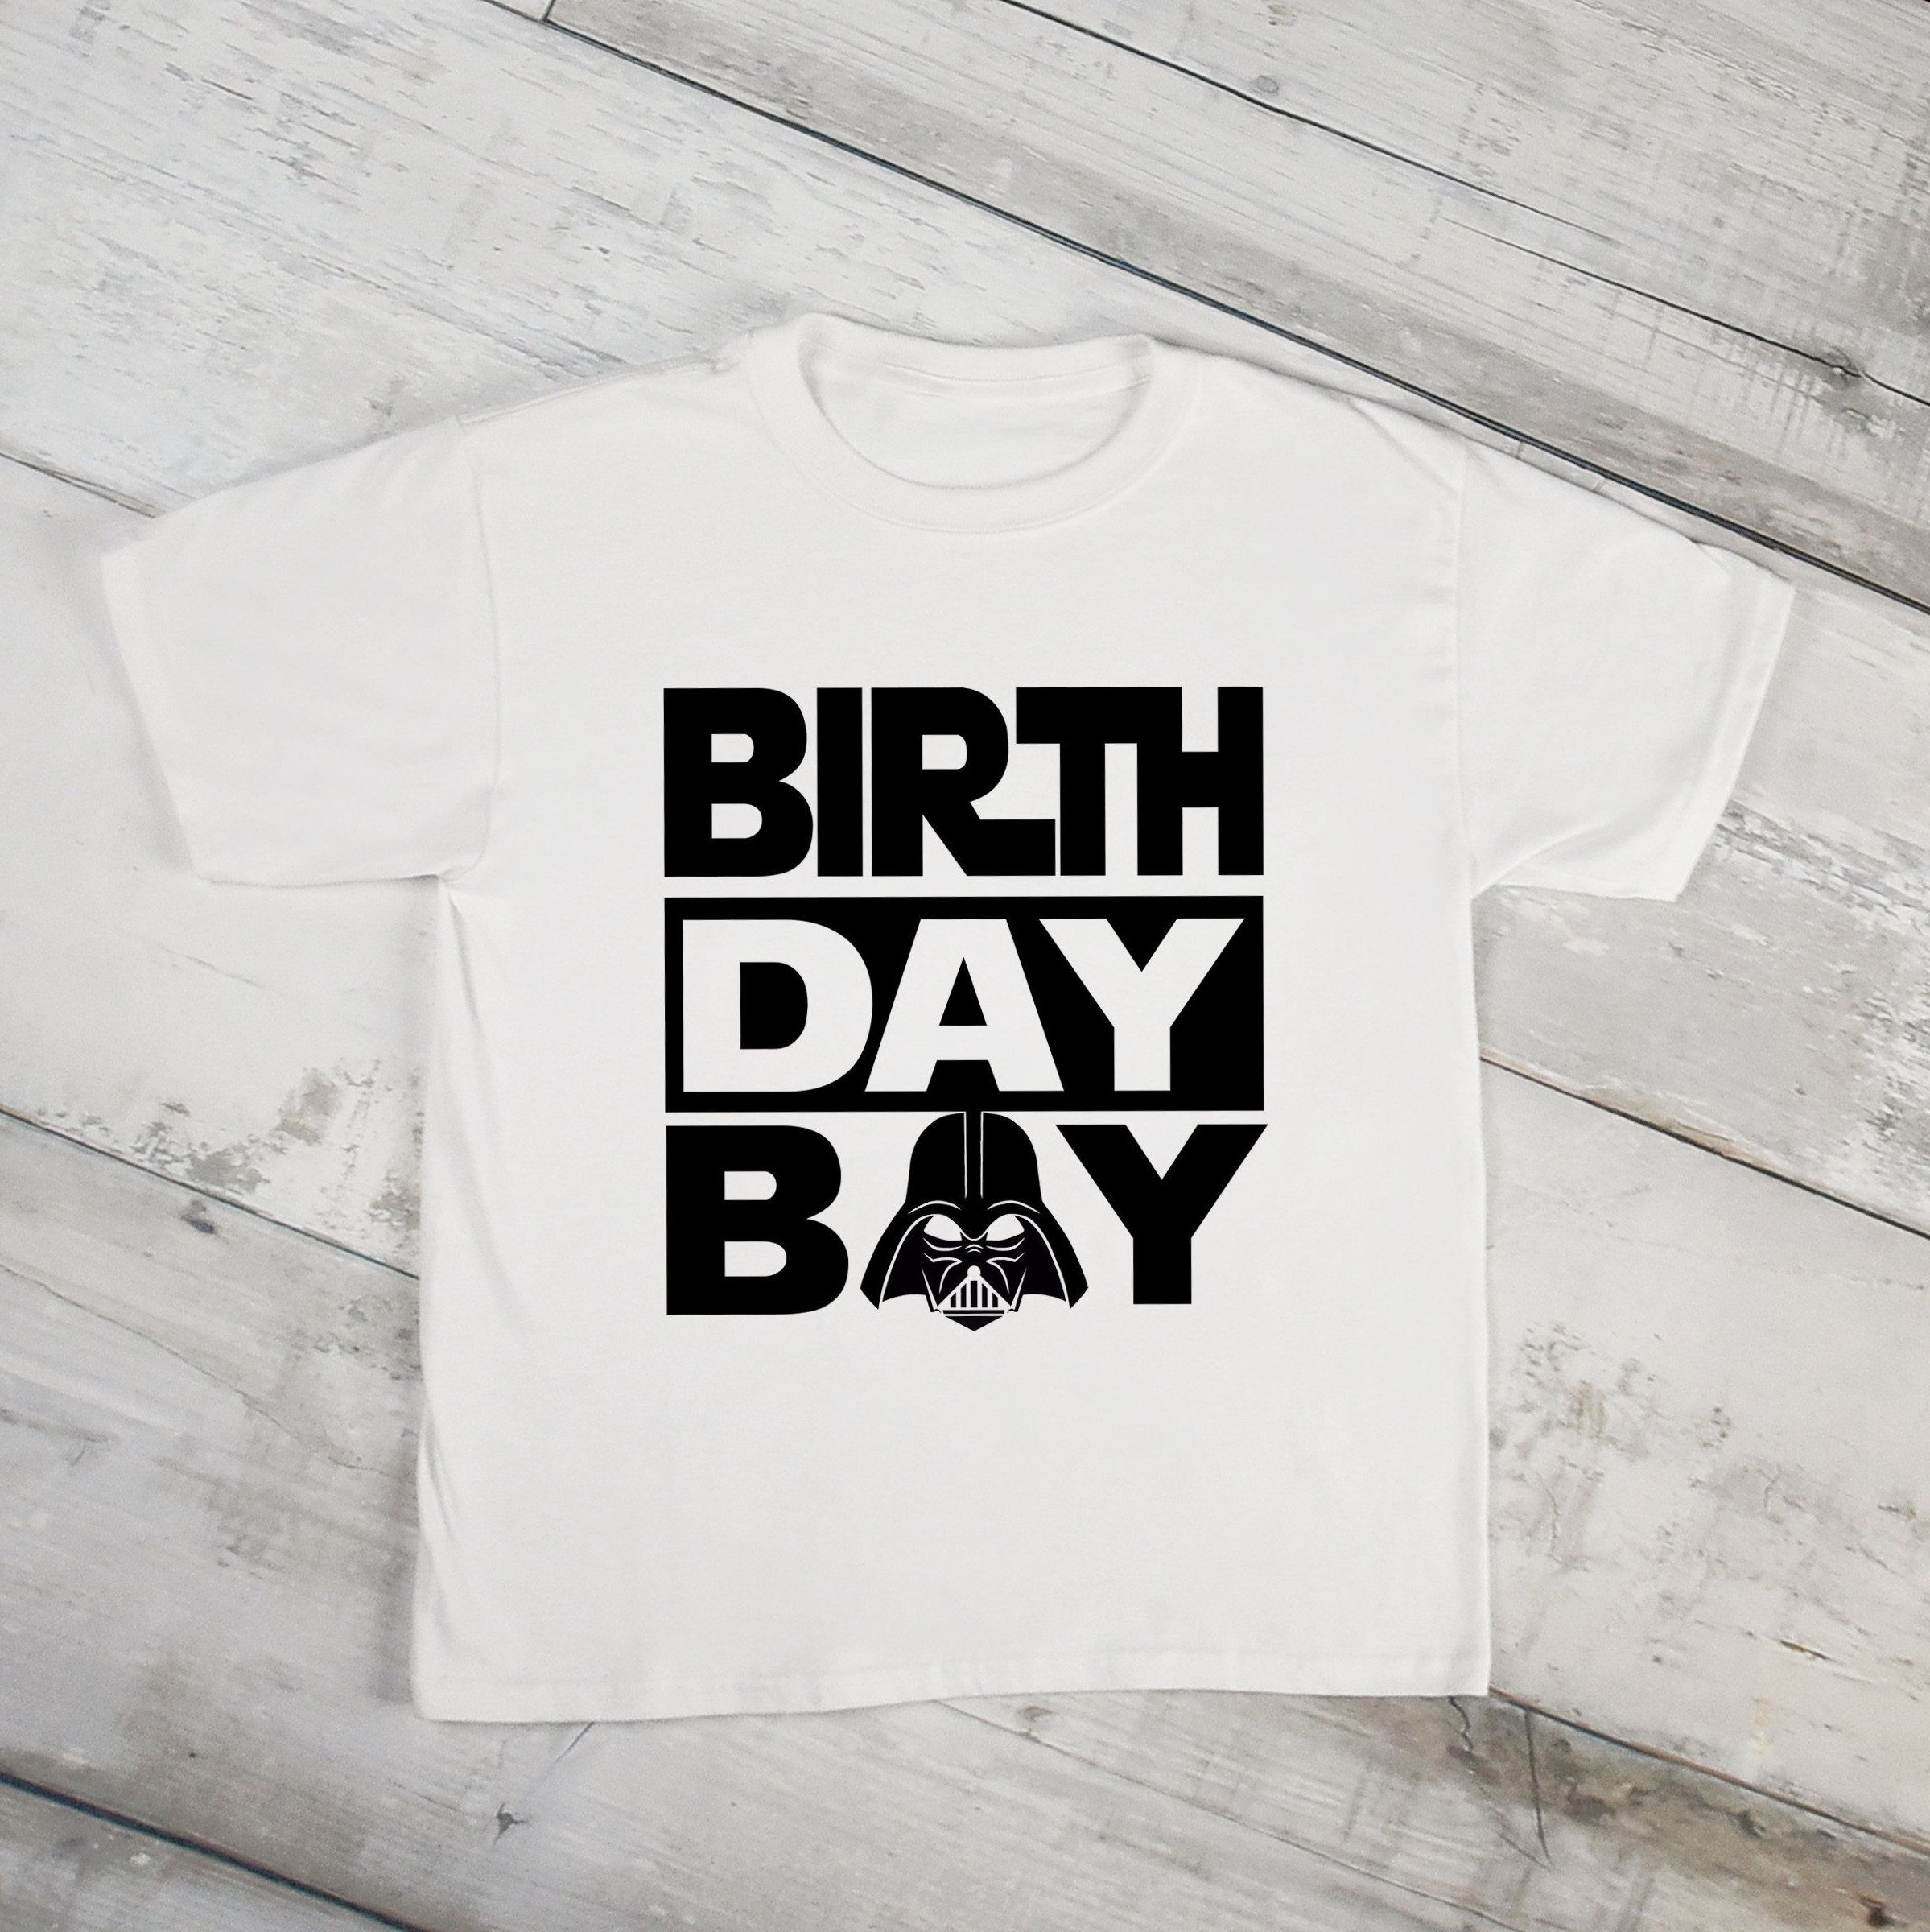 Darth Vader Birthday Boy Shirt Disney Family Shirts Star Wars Boys By ChicDesignsStudio On Etsy